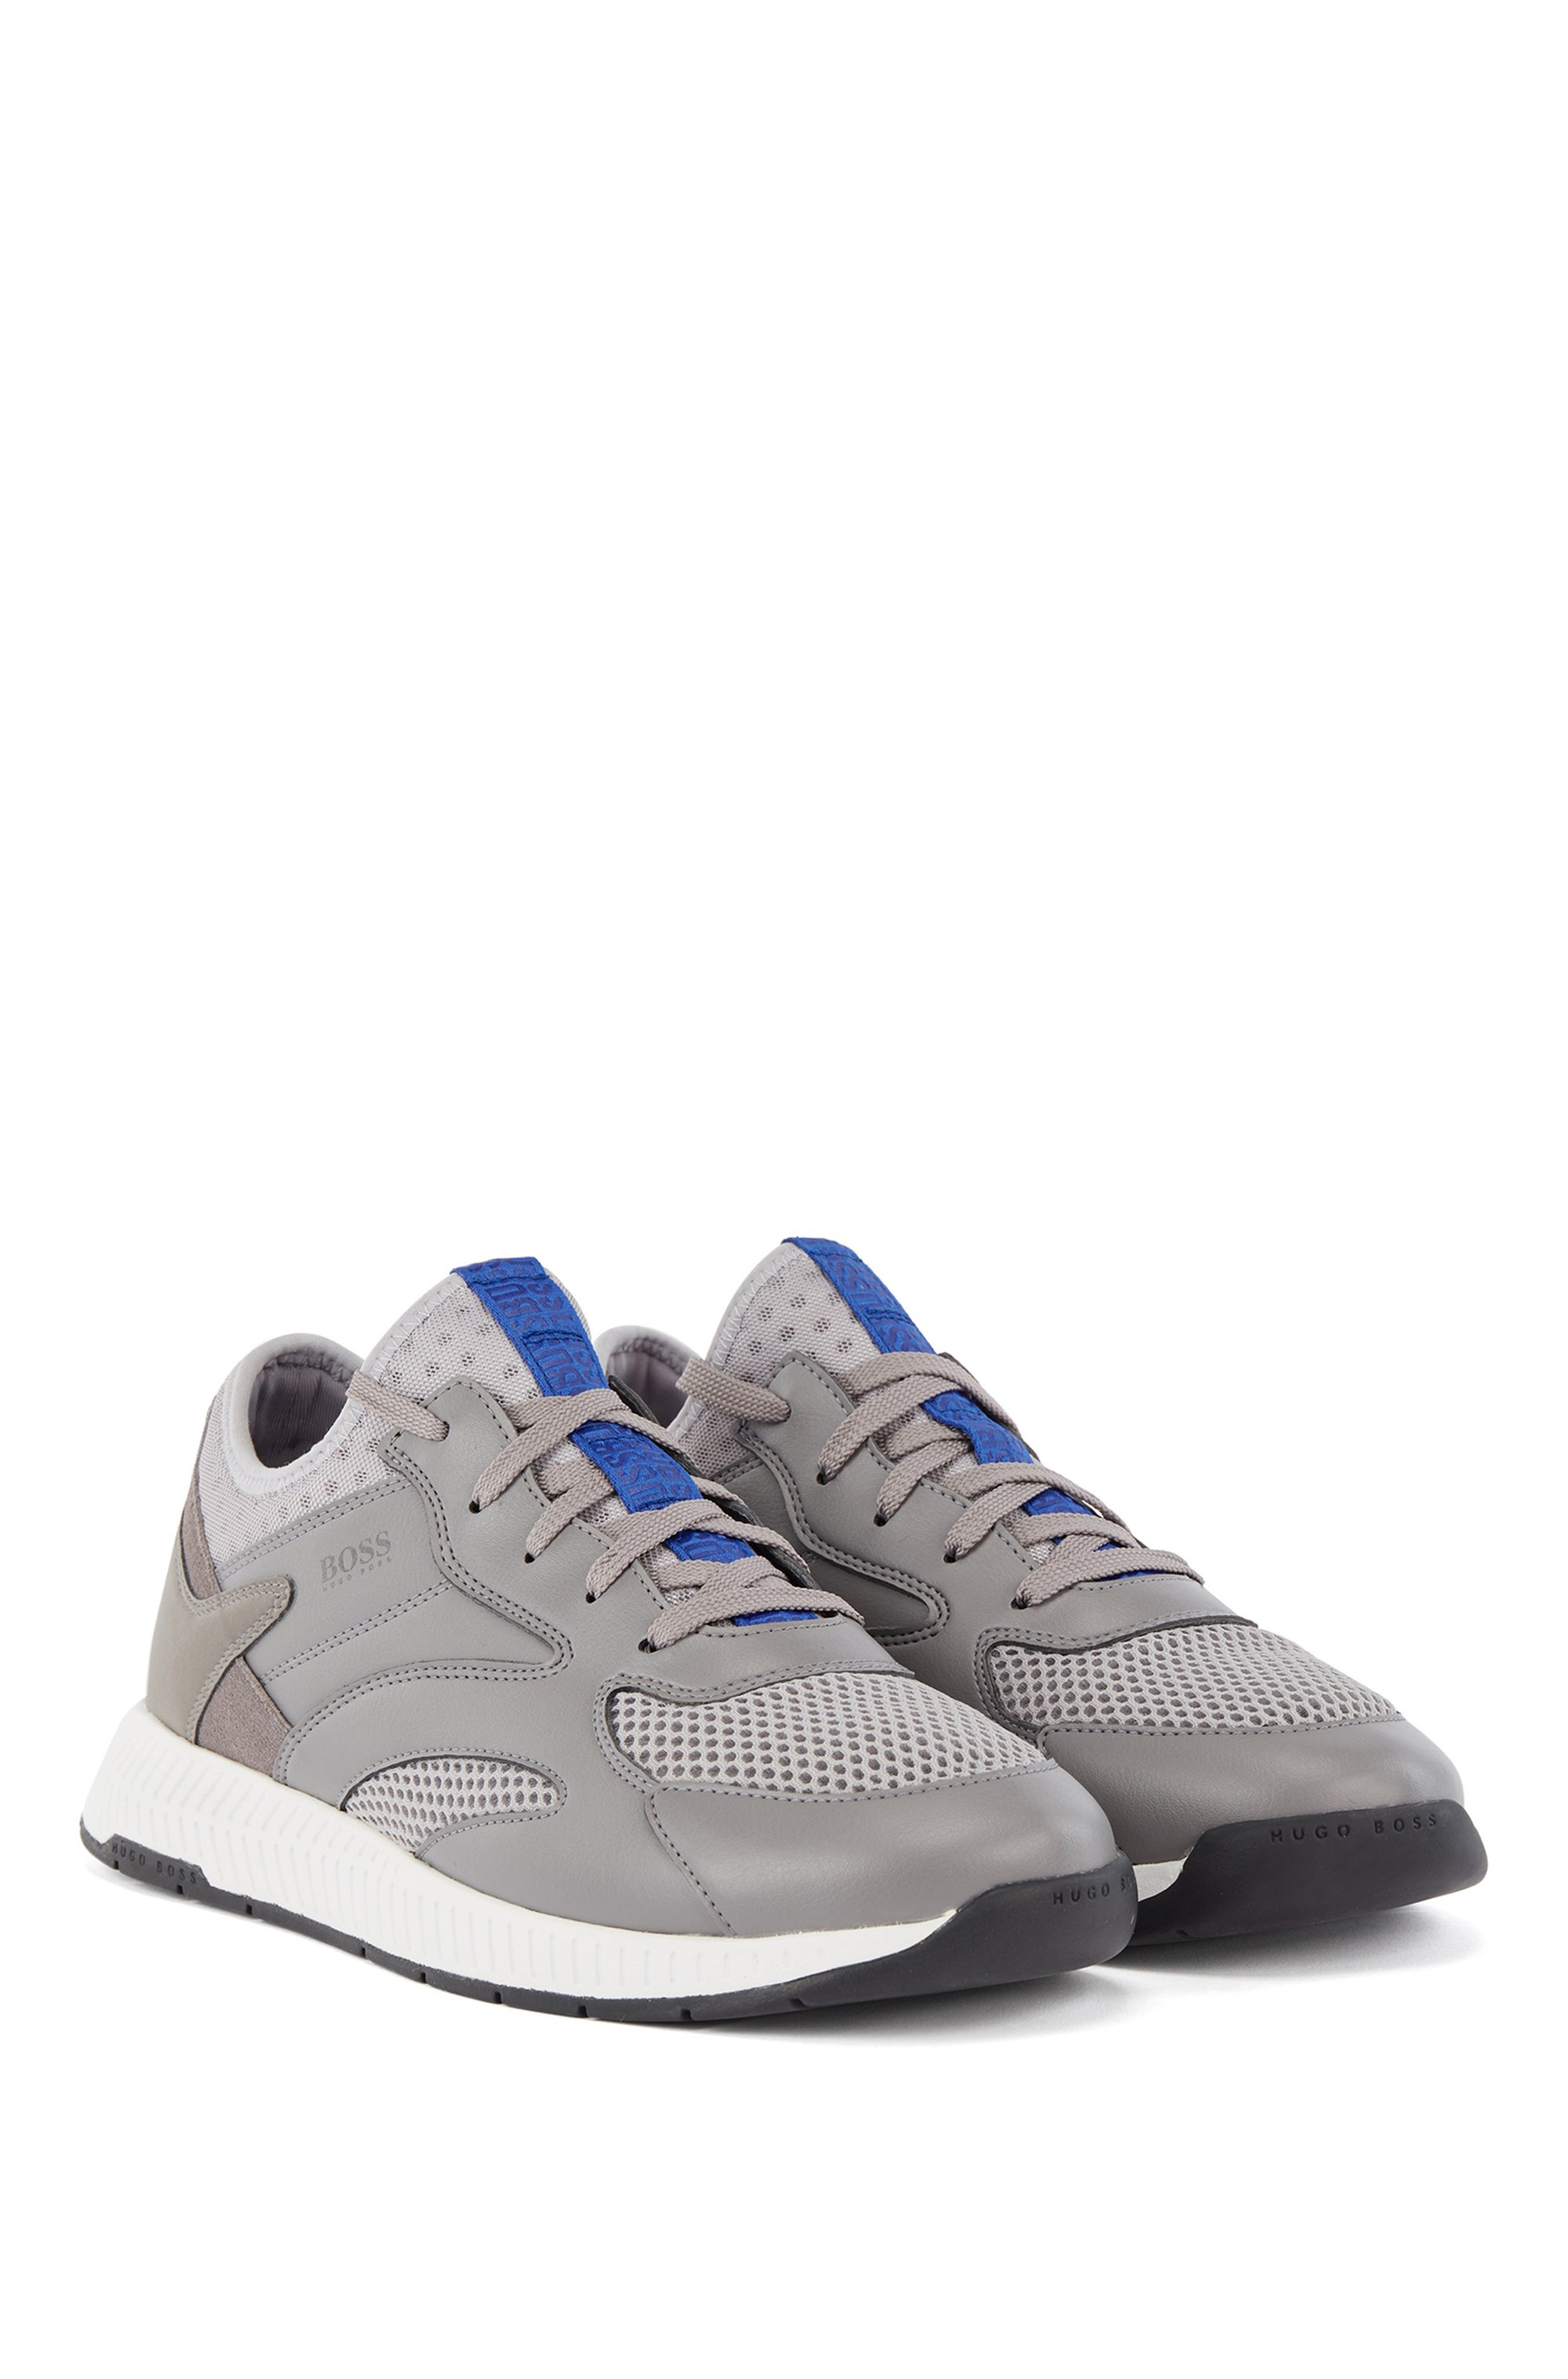 Leather-and-mesh trainers with decorative reflective trims